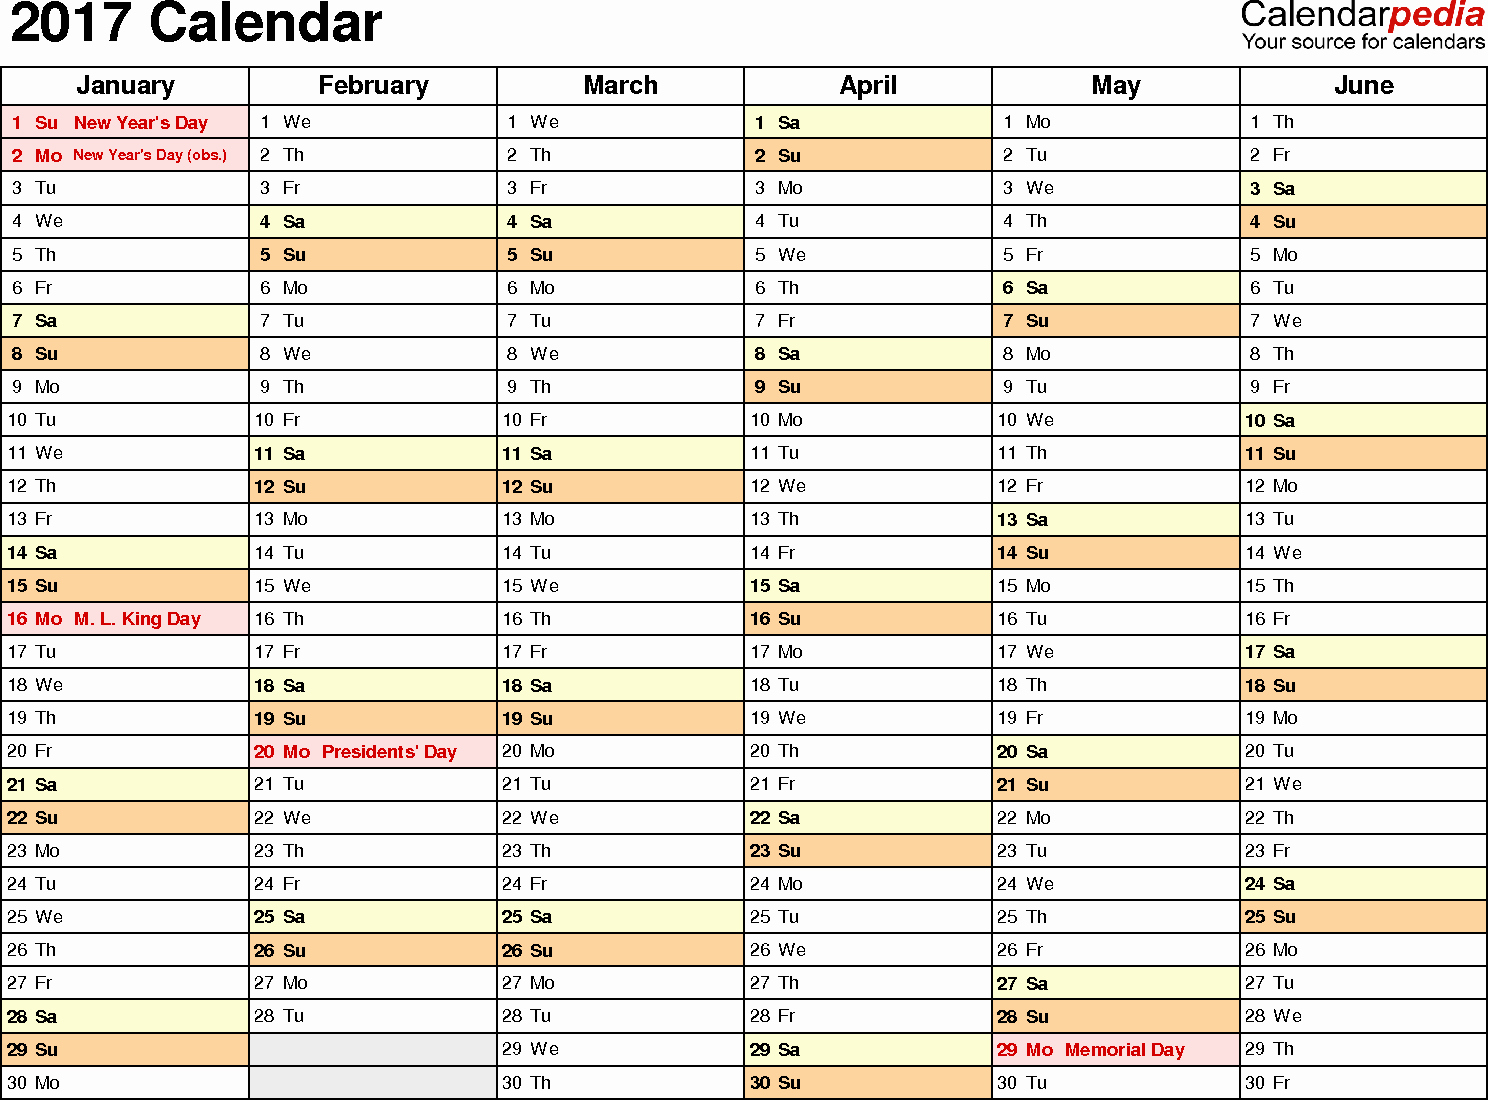 Excel Calendar Schedule Template New February 2017 Calendar Excel